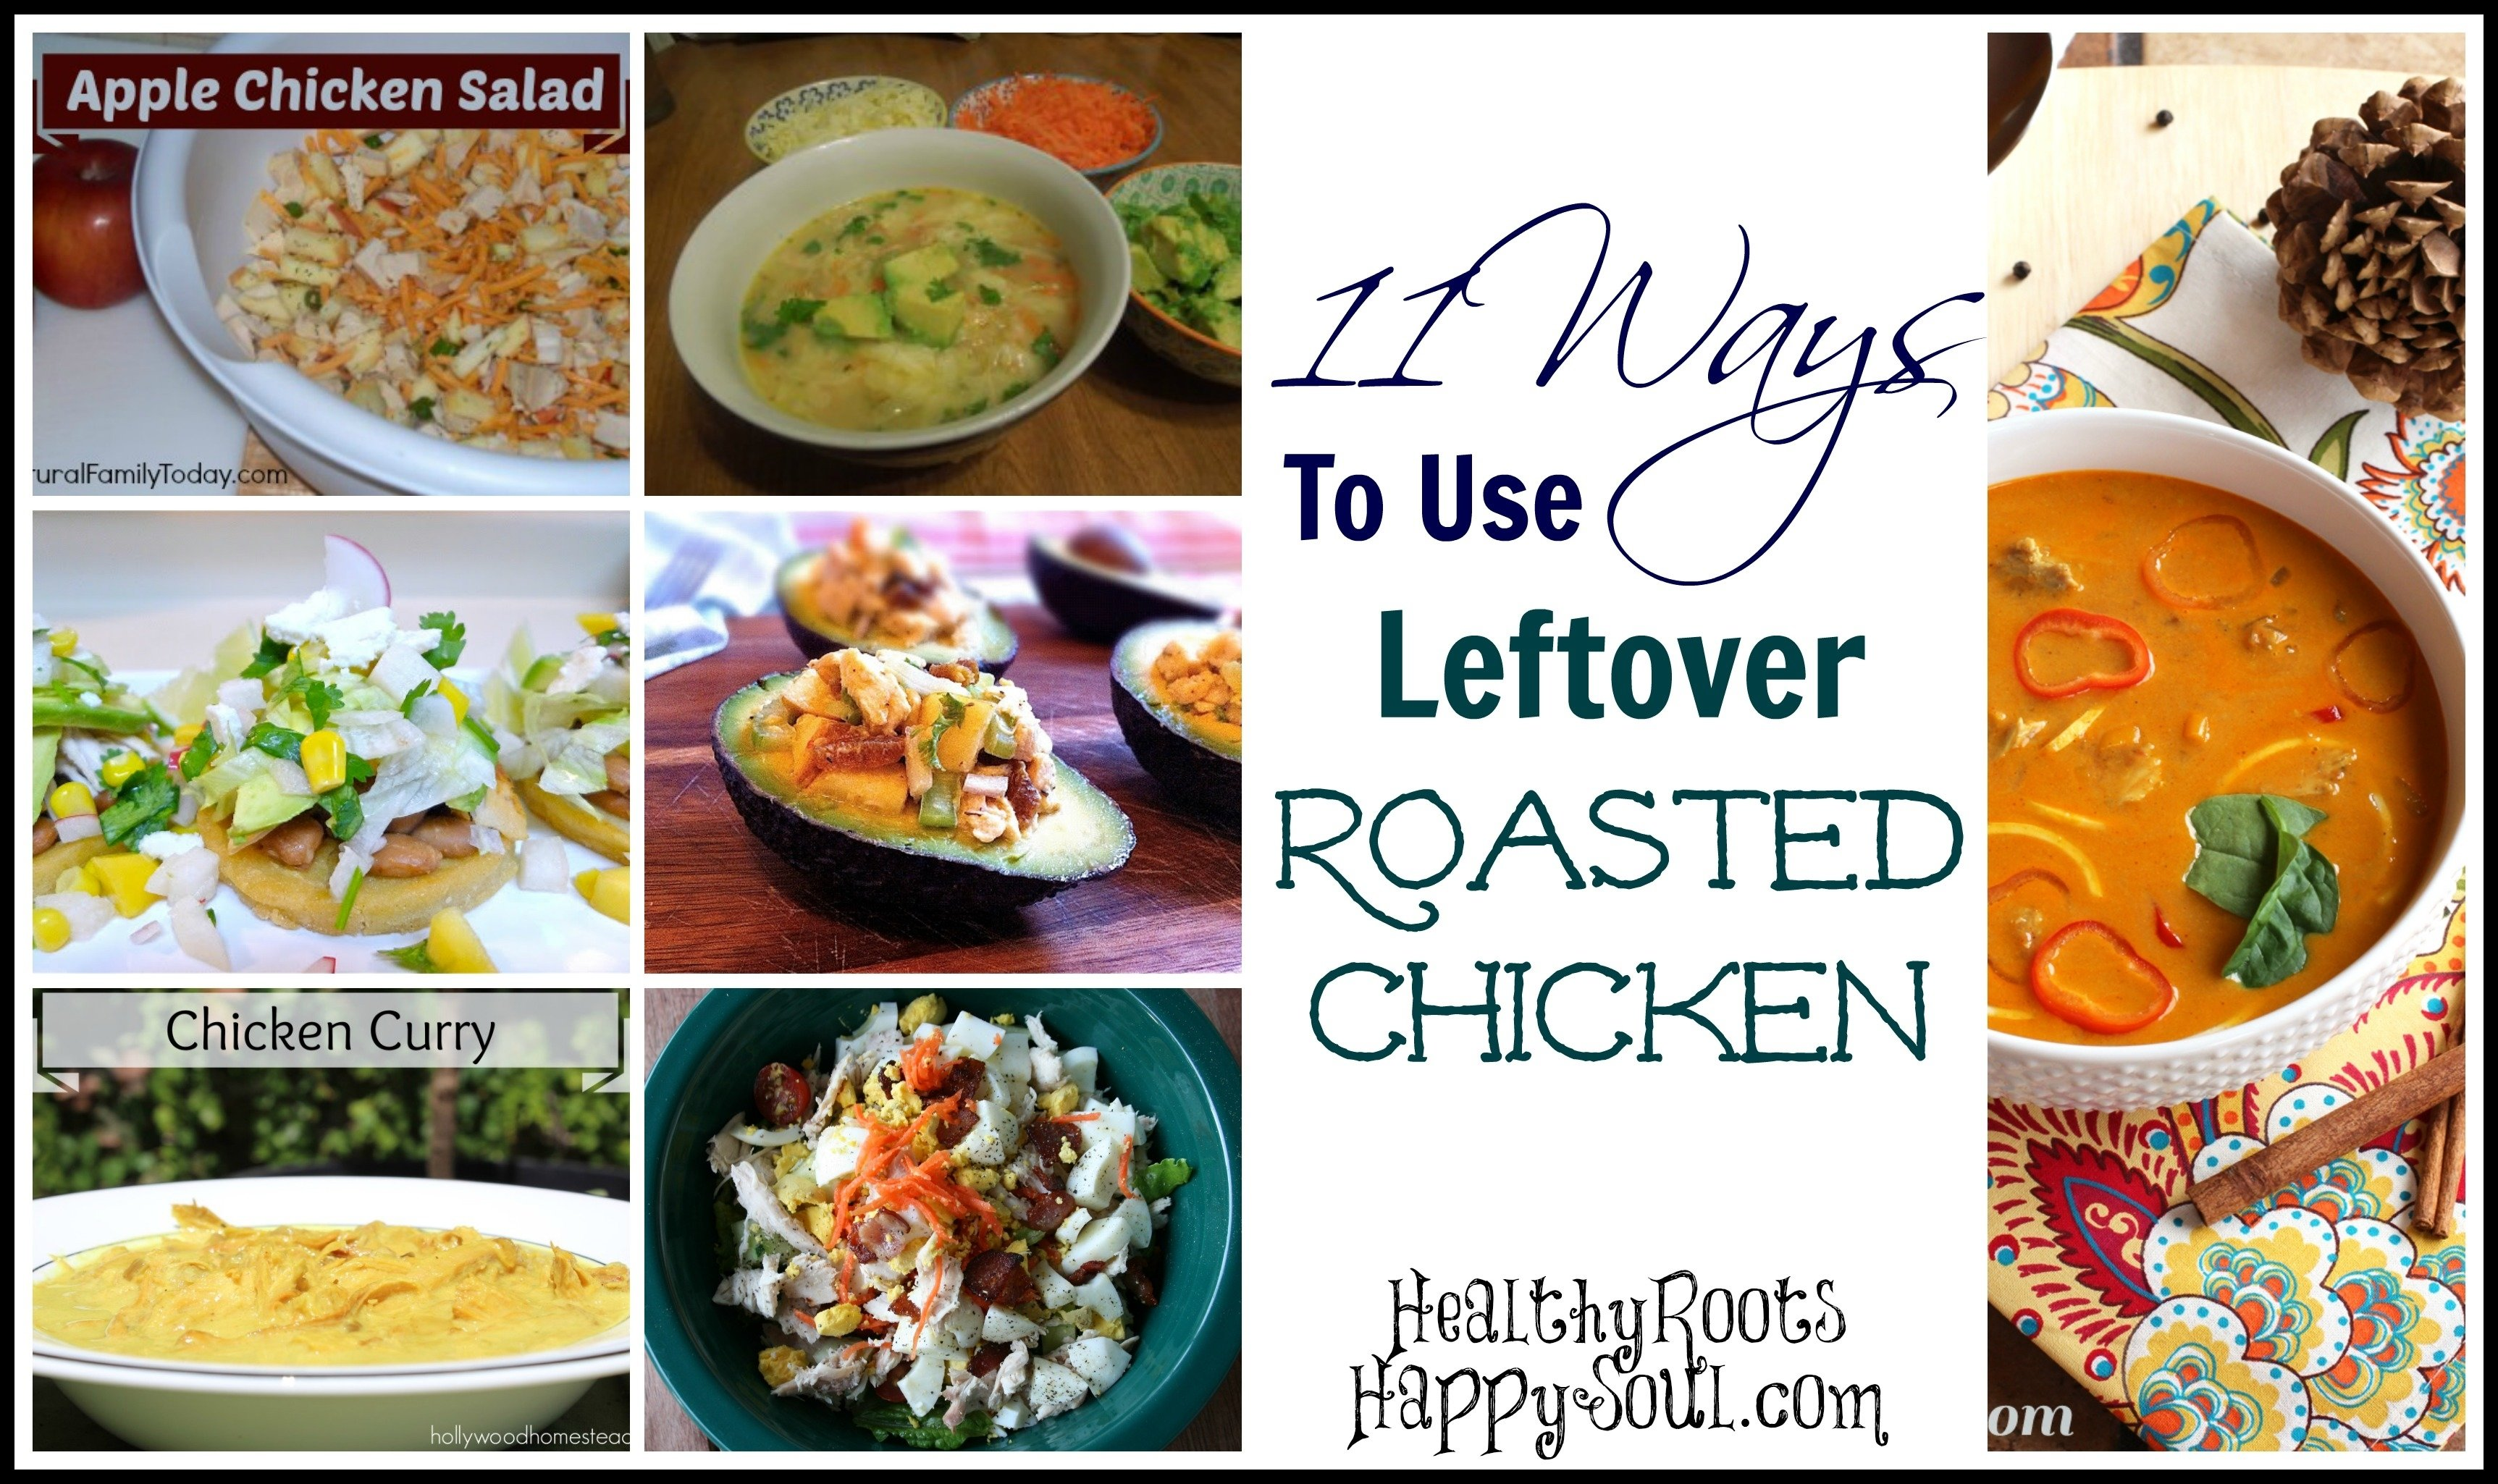 naturally loriel / 11 ways to use leftover roasted chicken